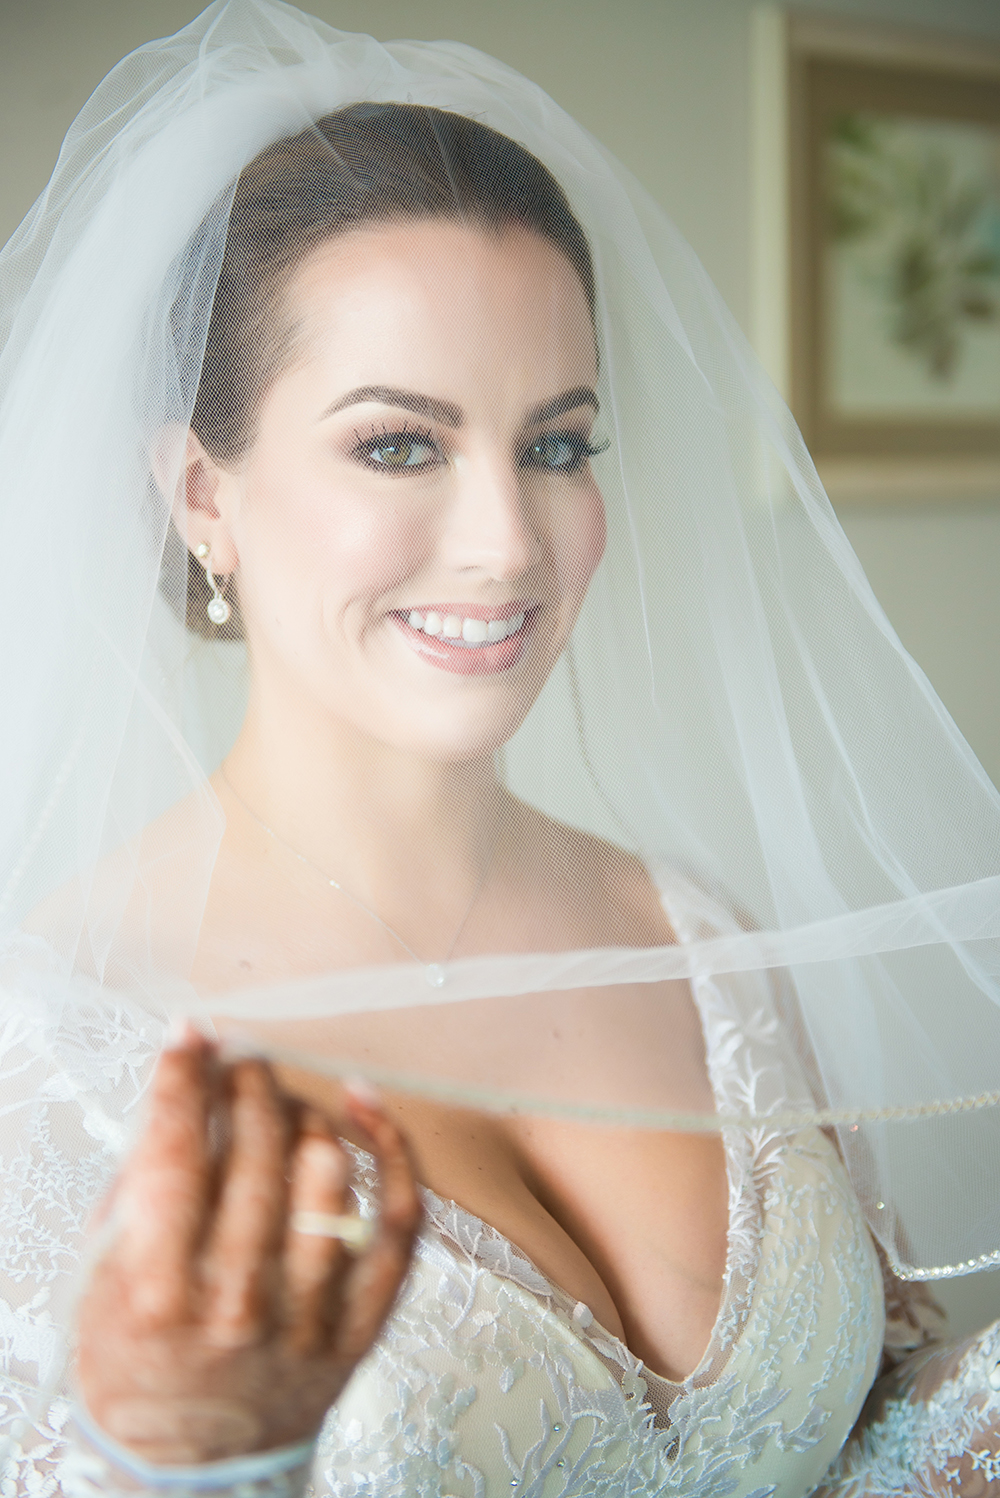 bridal portrait, bridal hair and makeup, wedding gown, veil